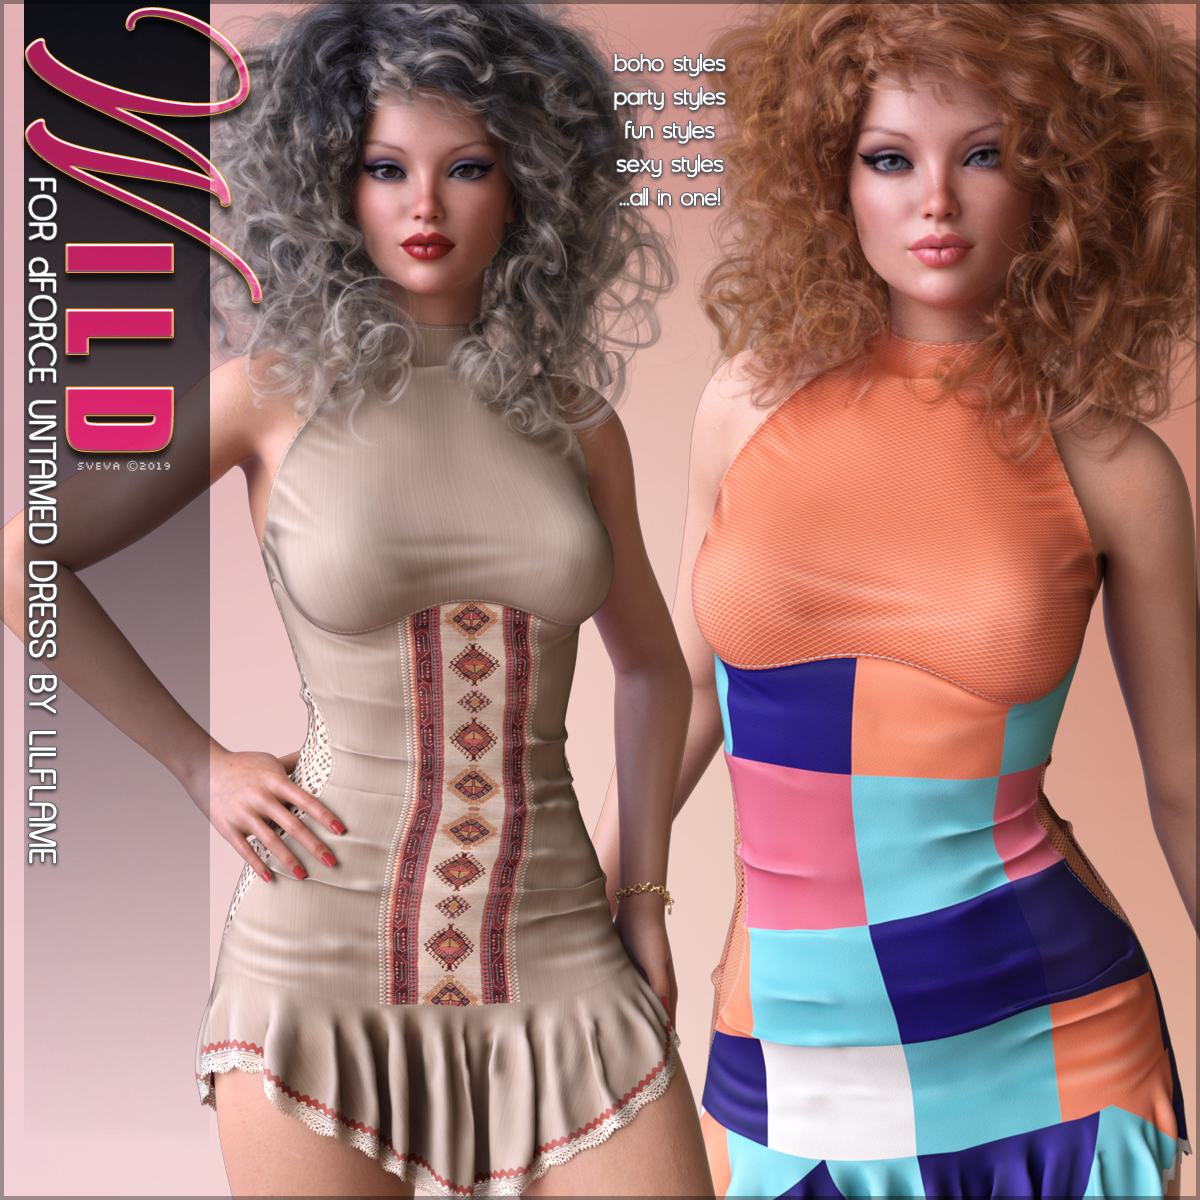 Wild for dForce Untamed Dress G8F by Sveva